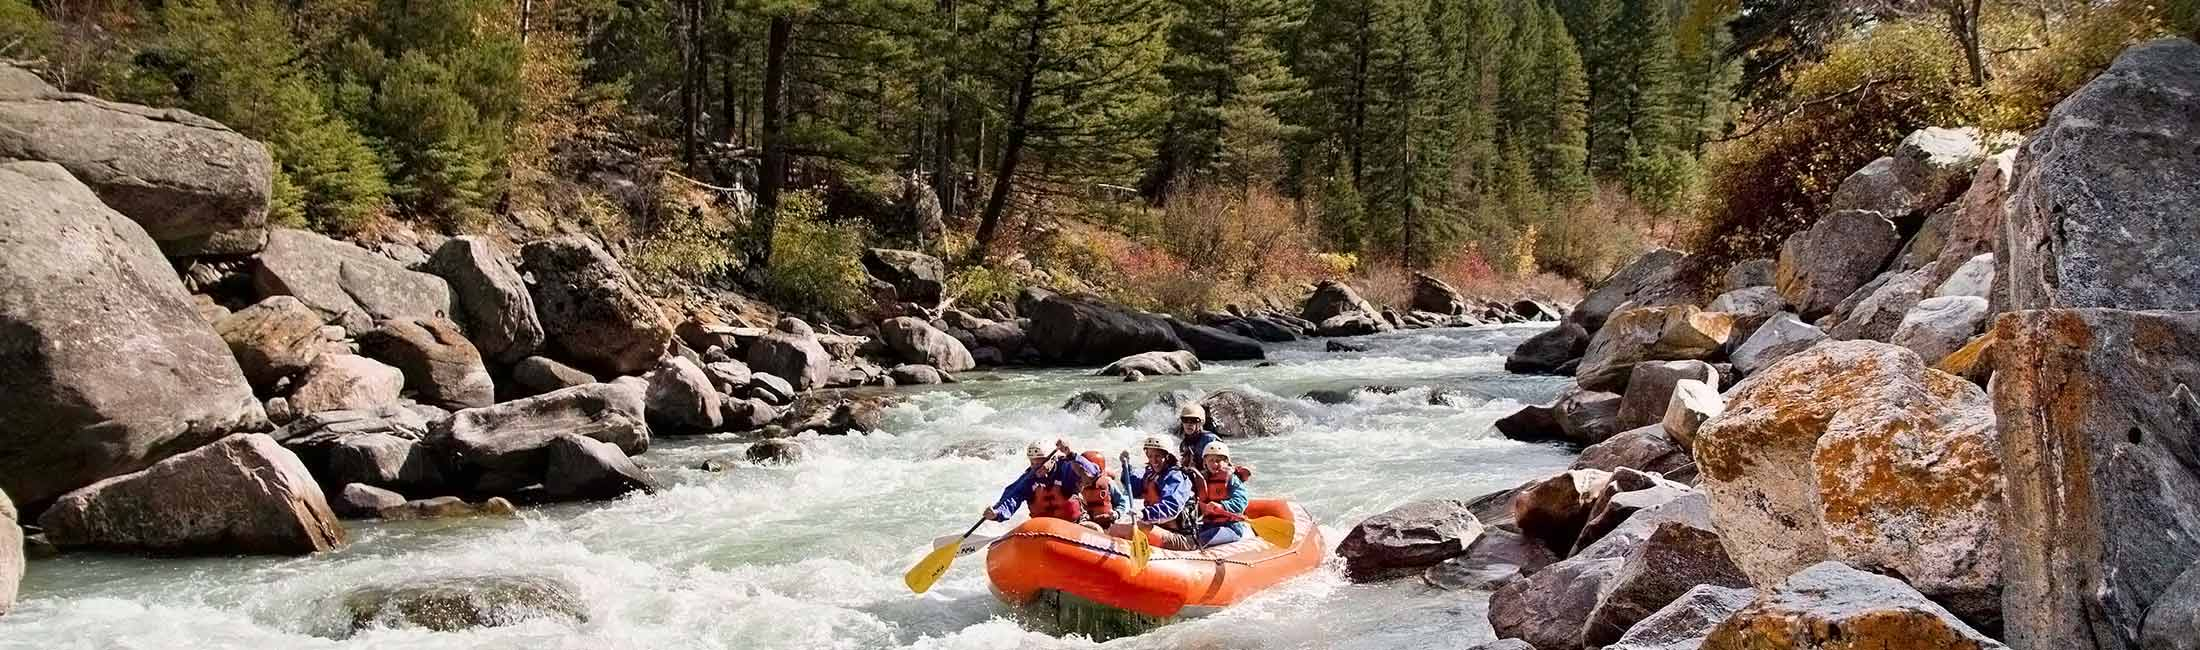 Rafting and Boating